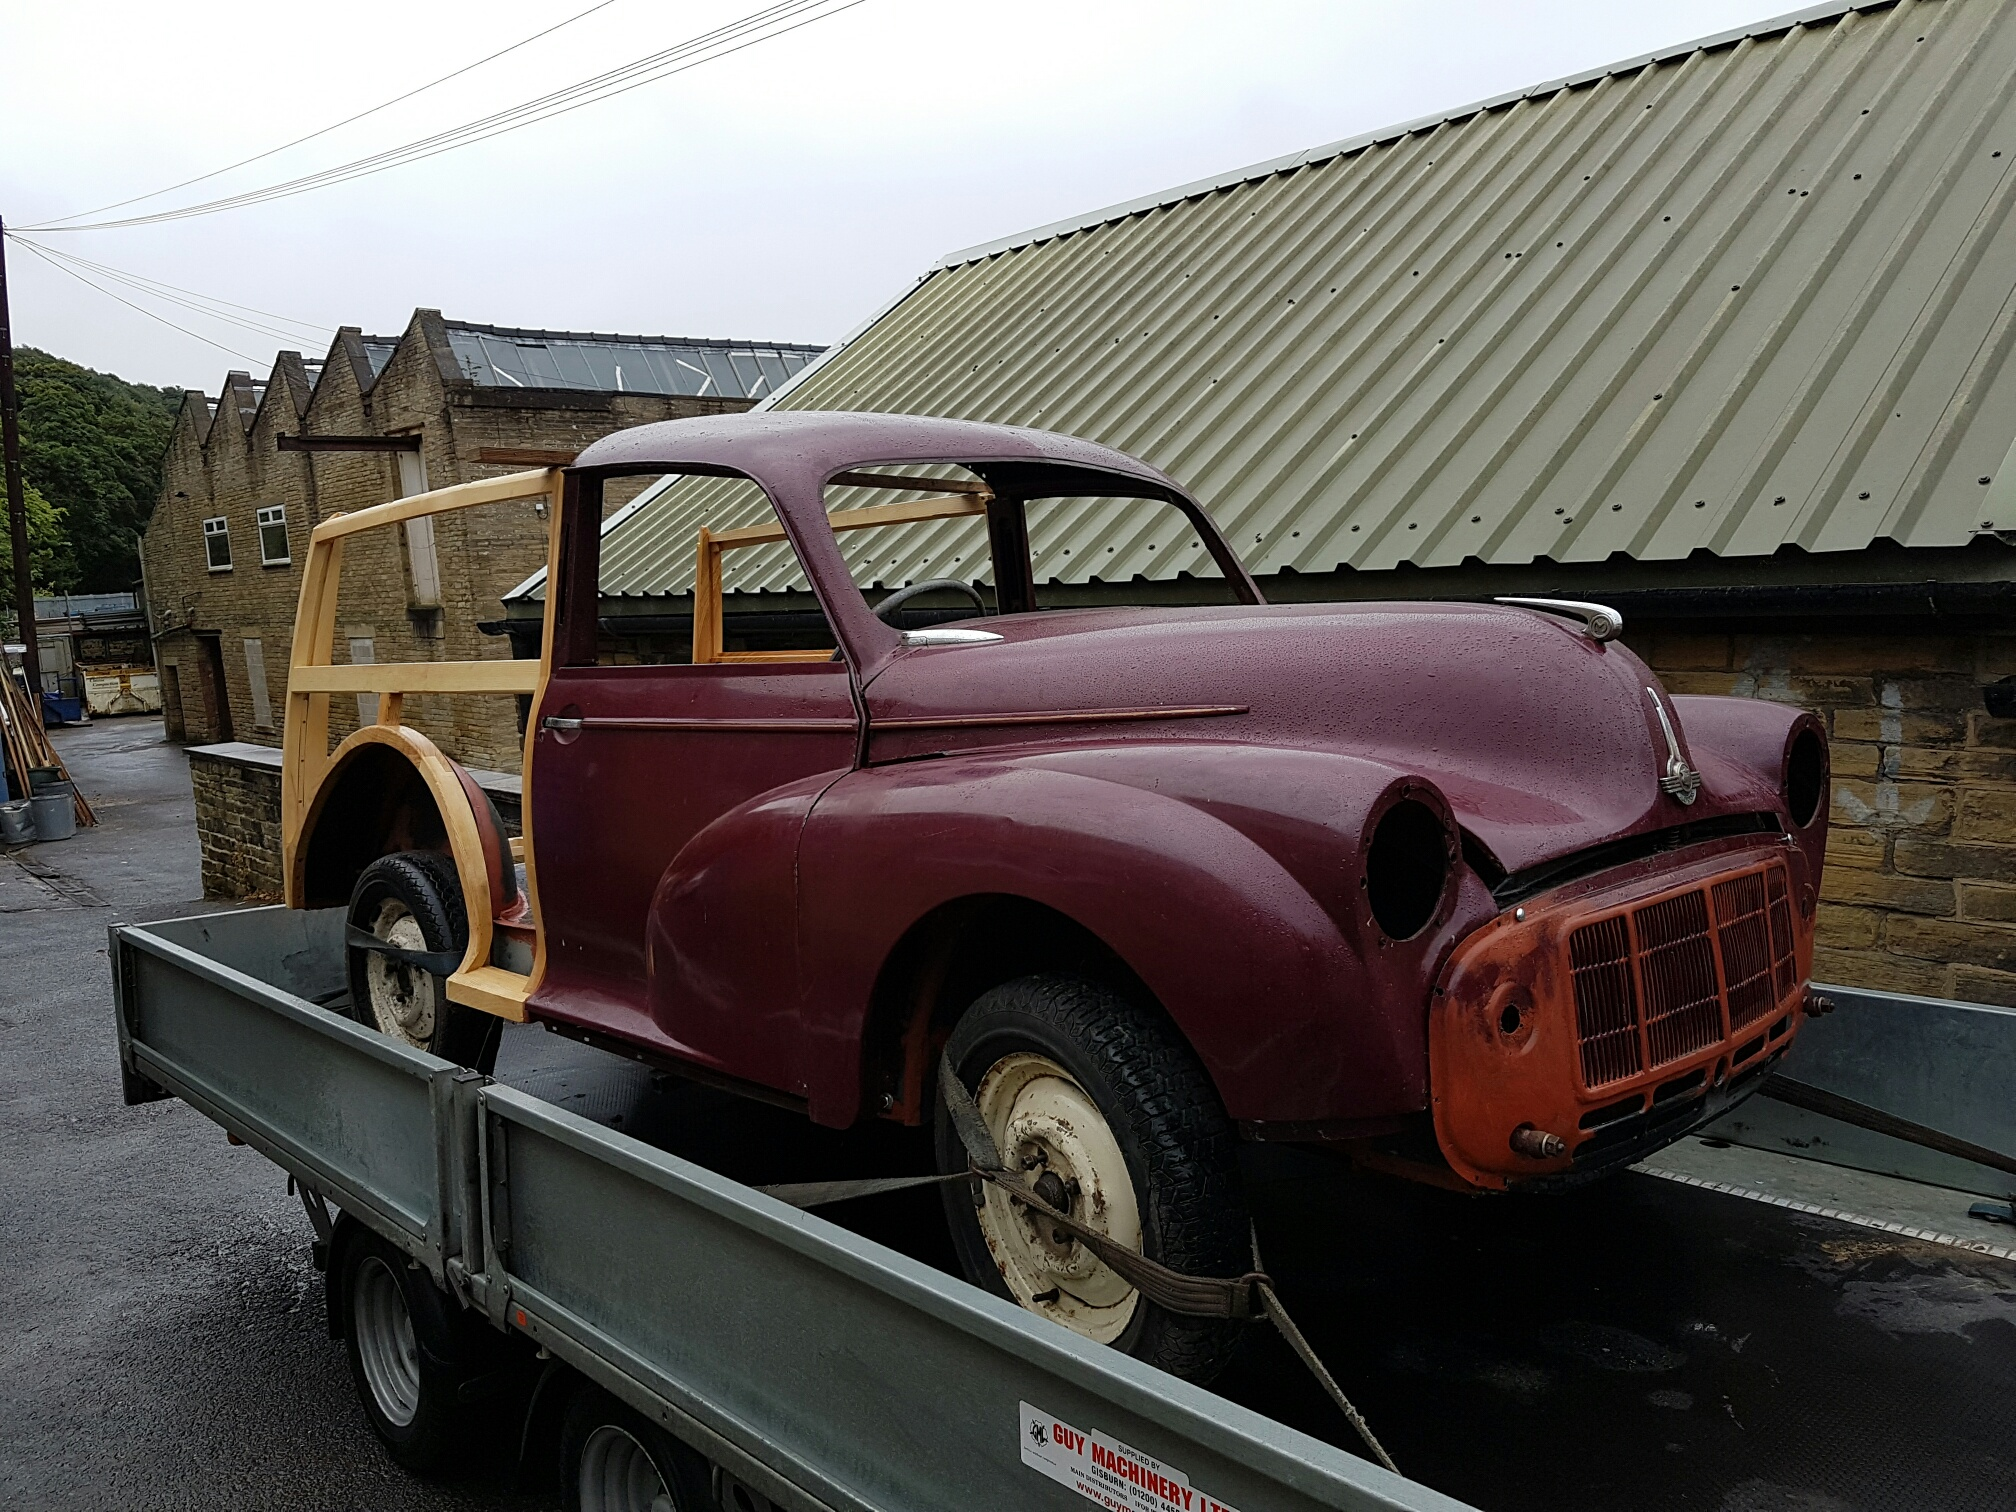 Morris minor traveller for sale - Back From Weld Back From Weld New Wood